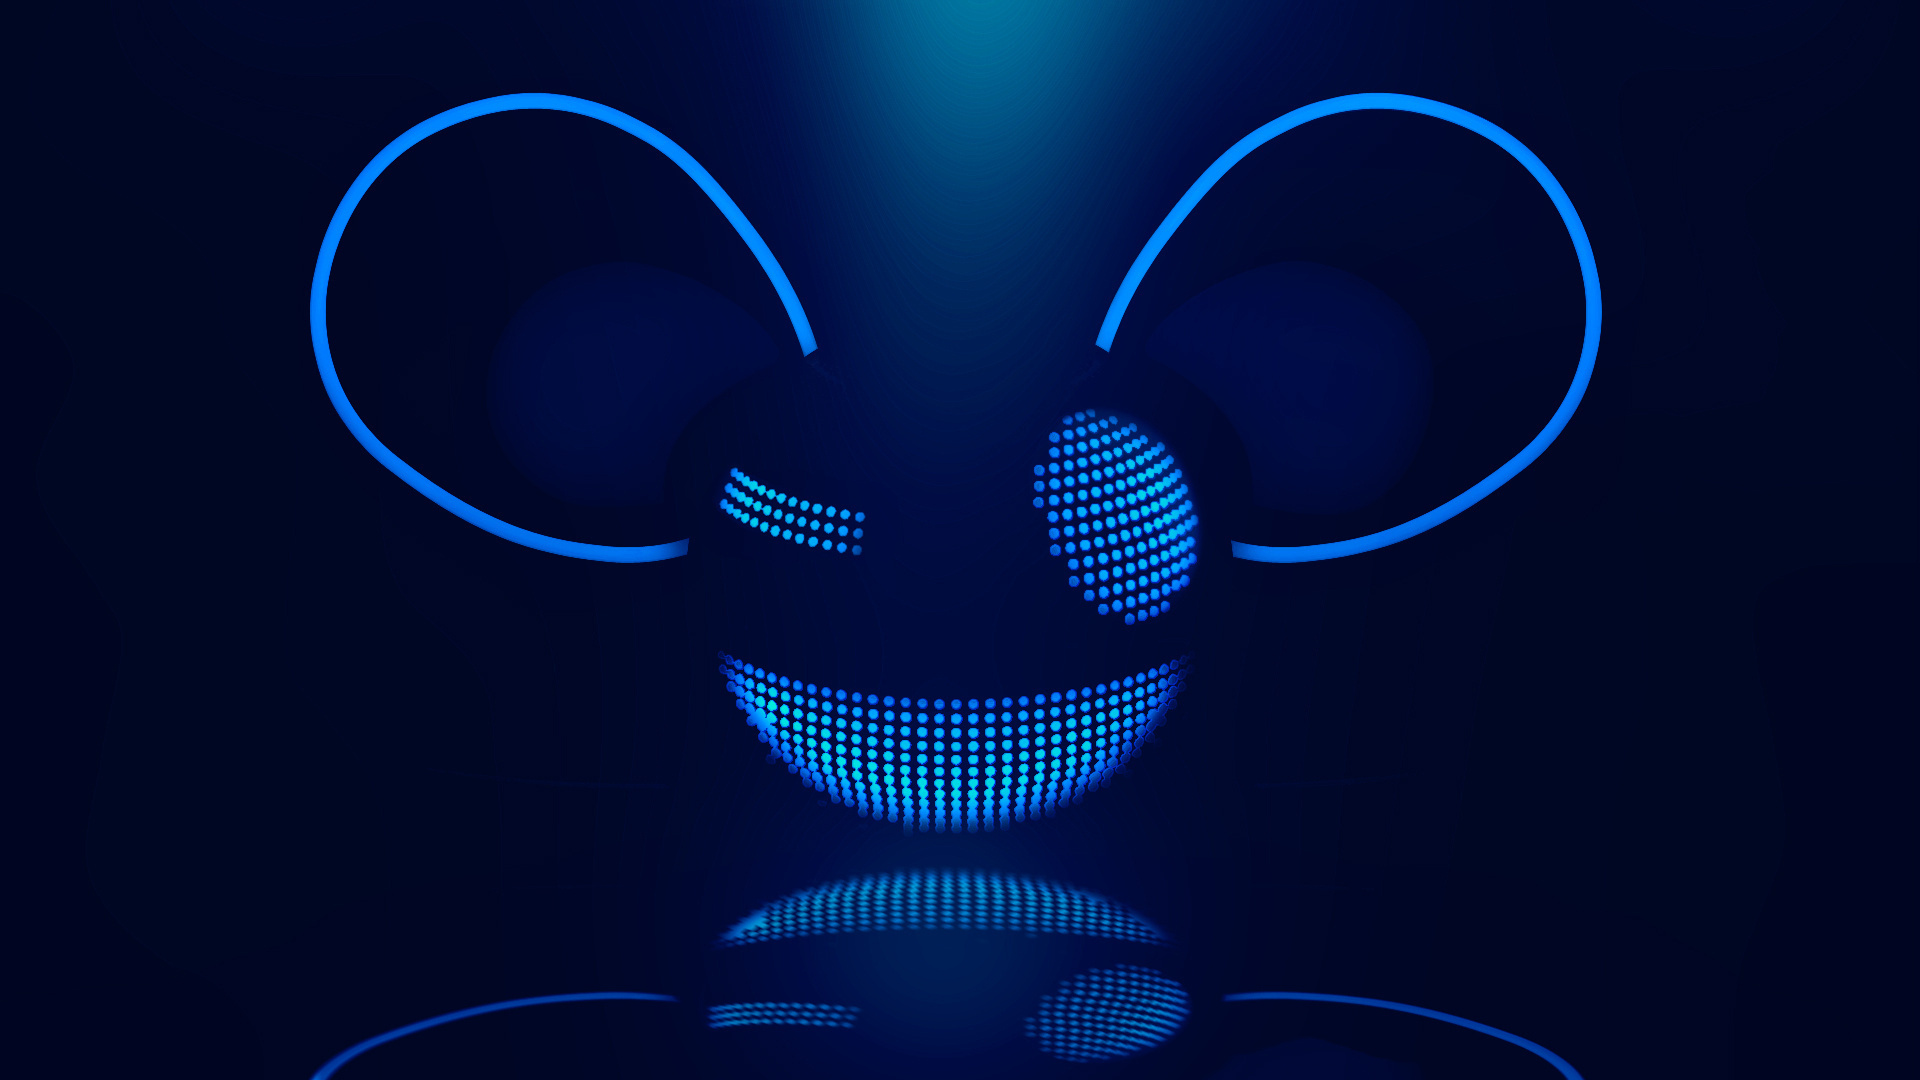 Deadmau5 Background